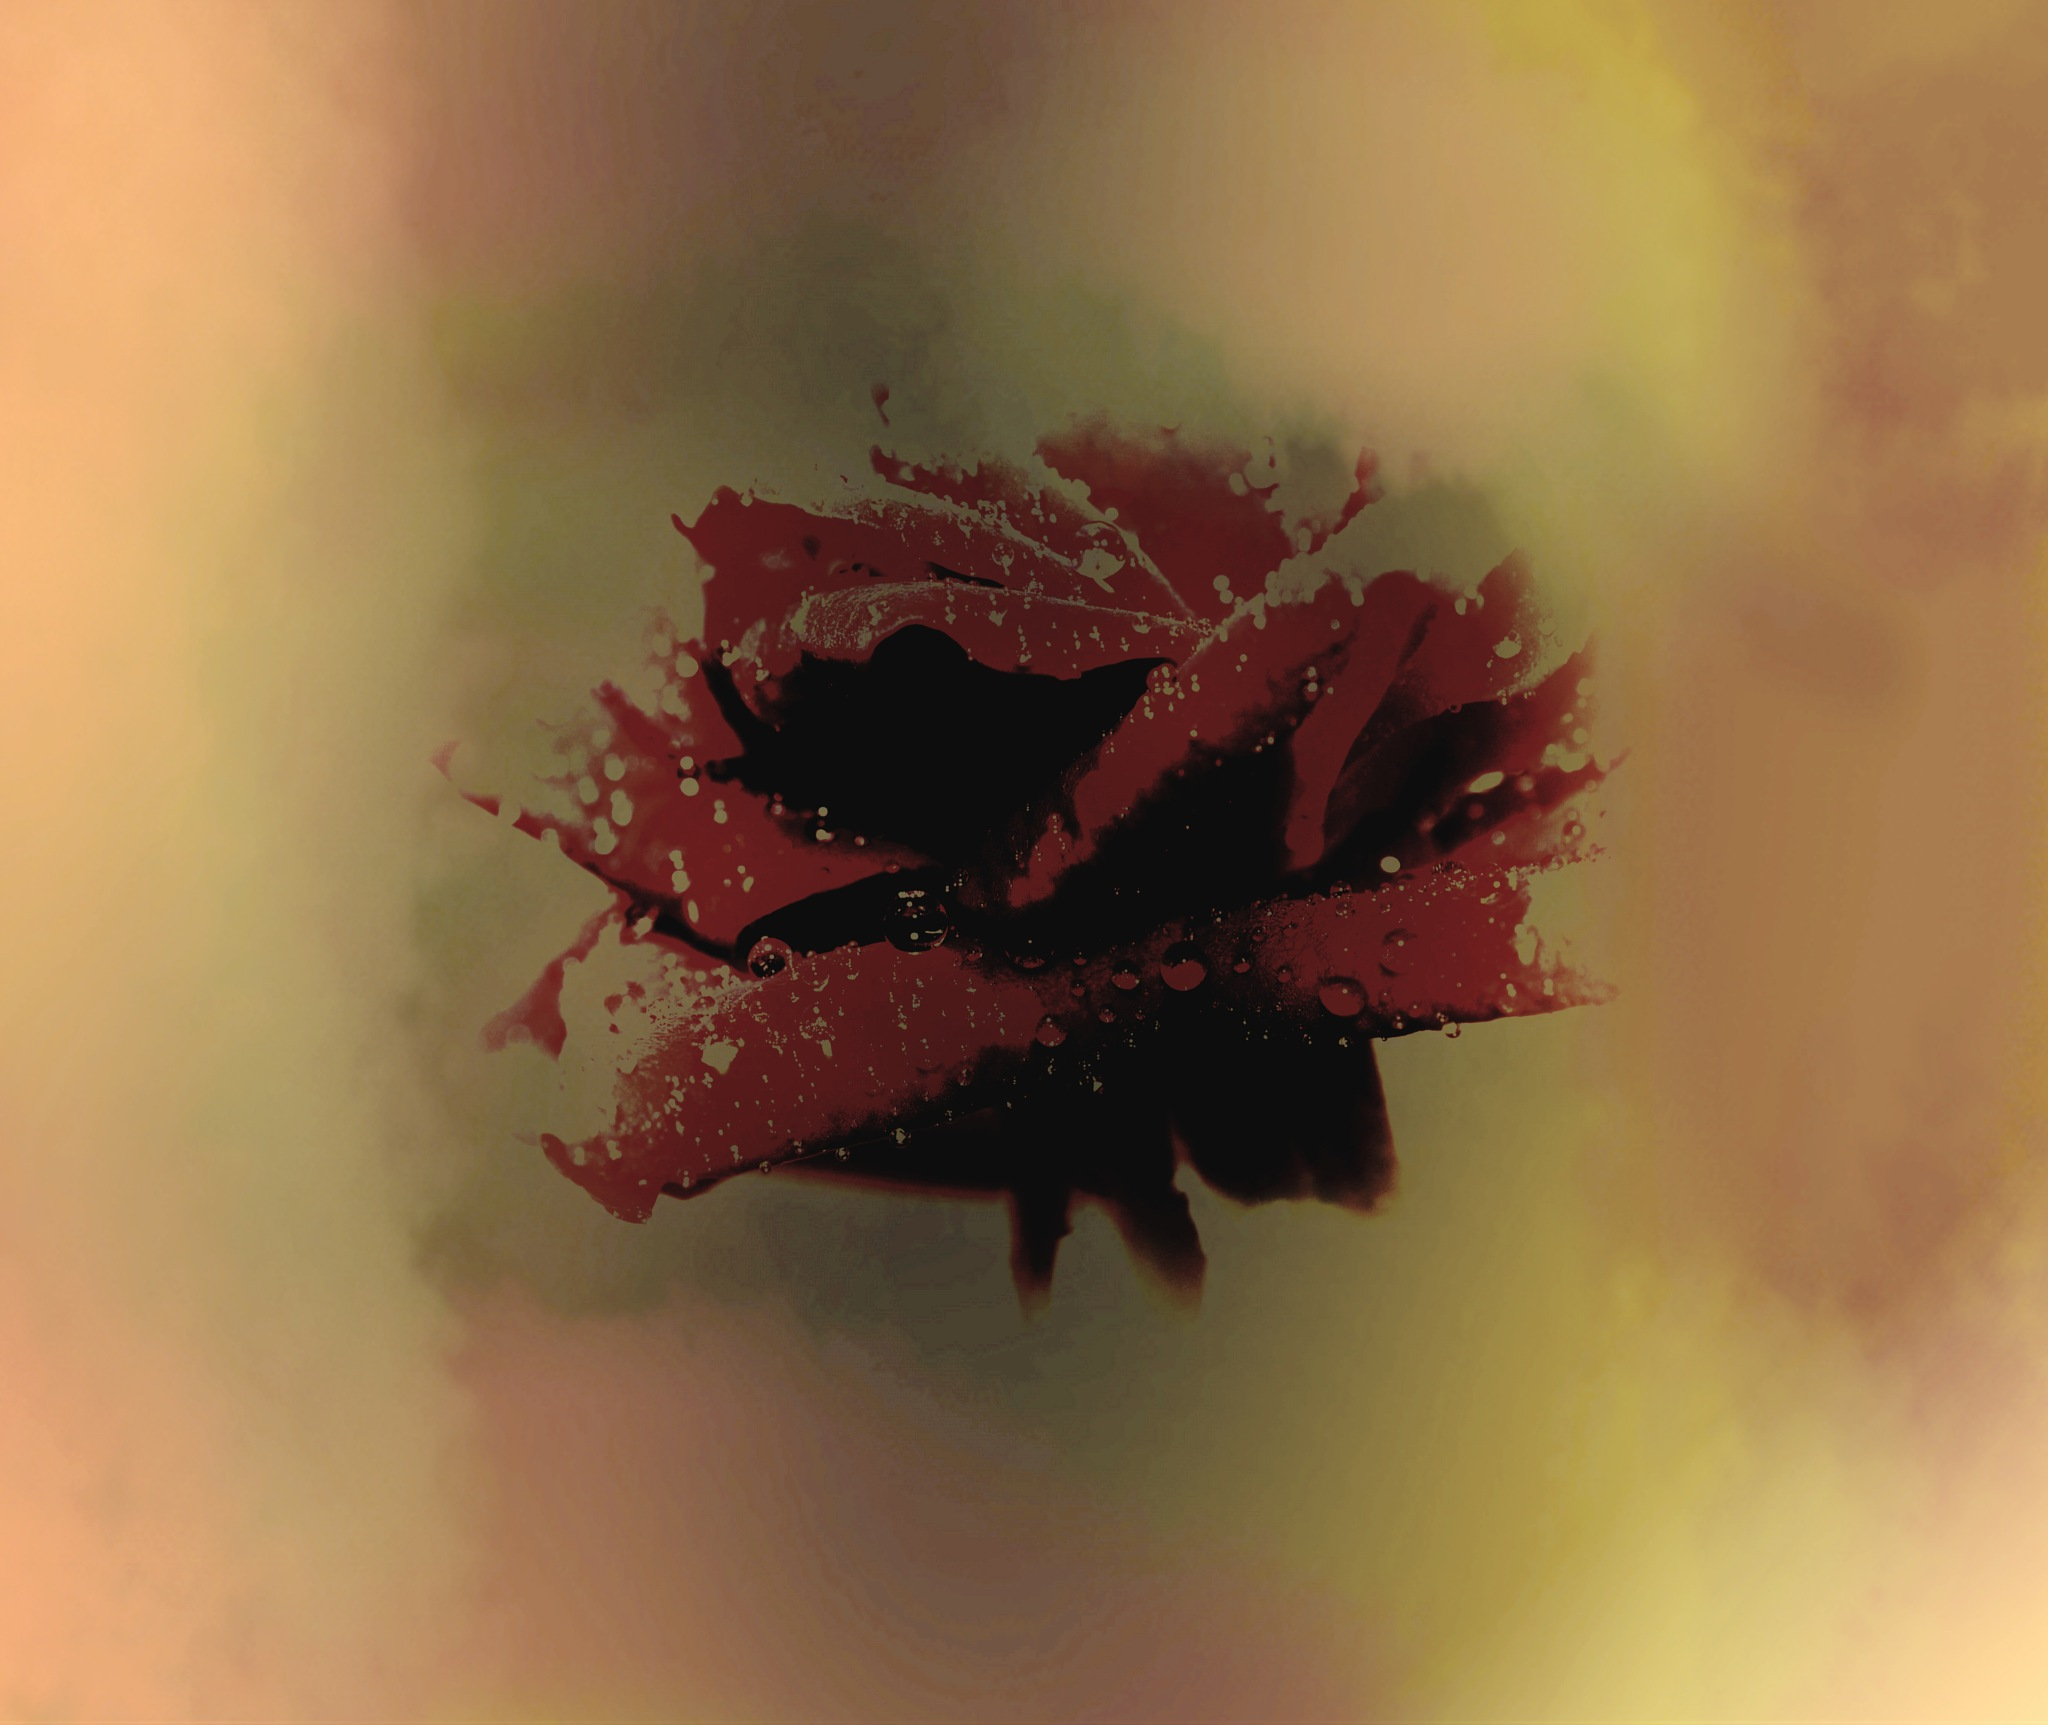 red rose abstract 001 by pgavin5000